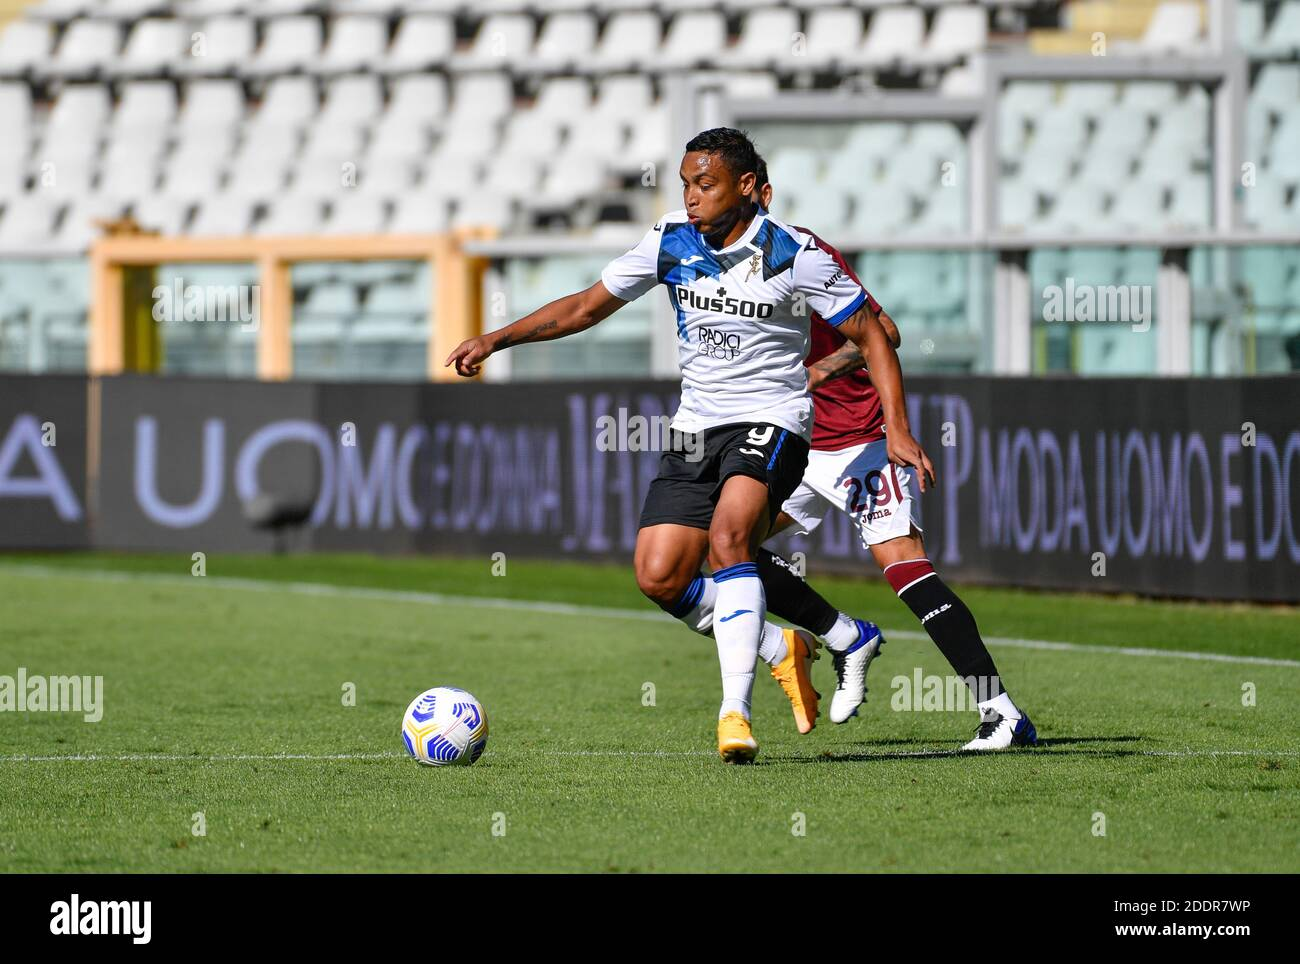 Torino, Italy. 26th, September 2020. Luis Muriel (9) of Atalanta and Nicola Murru (29) of Torino seen in the Serie A match between Torino and Atalanta at Stadio Olimpico in Torino. (Photo credit: Gonzales Photo - Tommaso Fimiano). Stock Photo